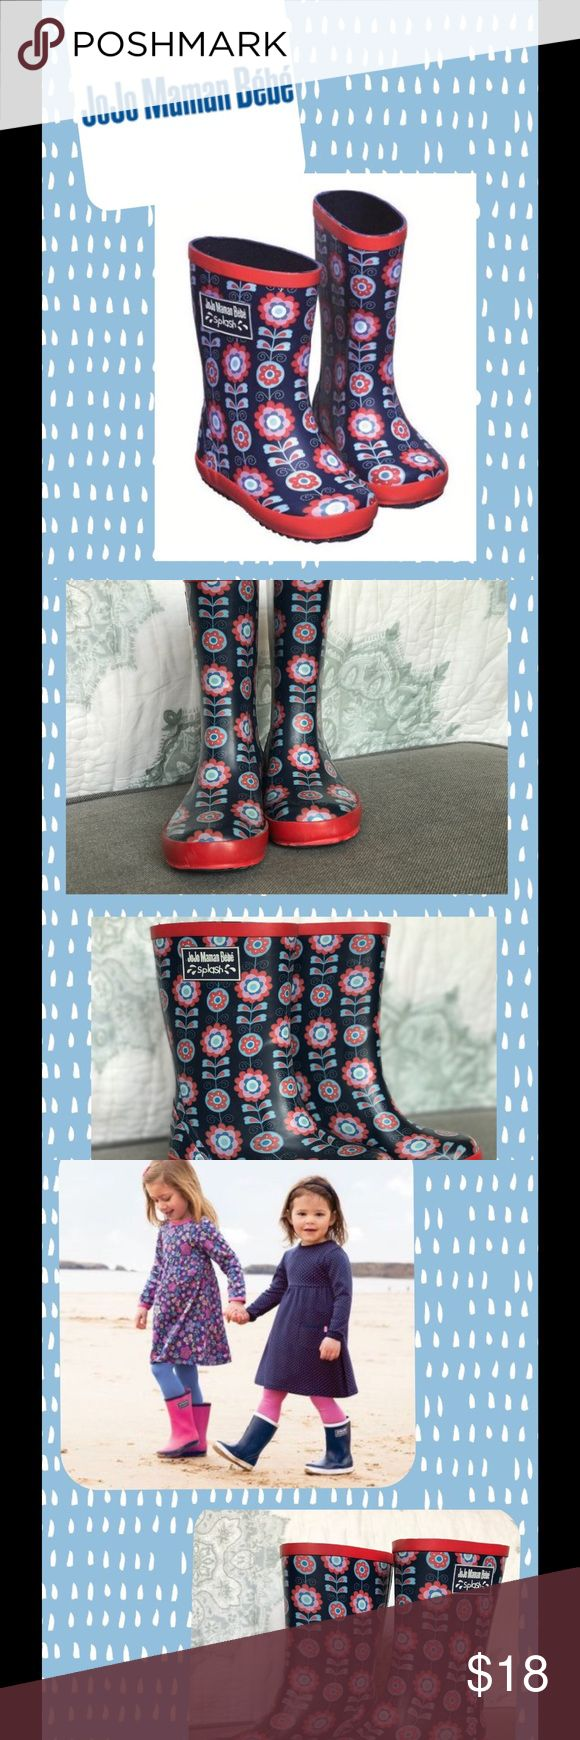 Jojo Maman bébé Rain Boots Super cute navy floral boots by Jojo Maman Bébé. Made with soft cotton and anti-sweat lining. They go with any outfit and keep little toes dry. They have ridged soles for good grip. They have some scuff marks around the toe area but it barely noticeable. Outer: 100% rubber. Sole: 100% rubber. No trades please. Jojo Maman Bébé Shoes Rain & Snow Boots